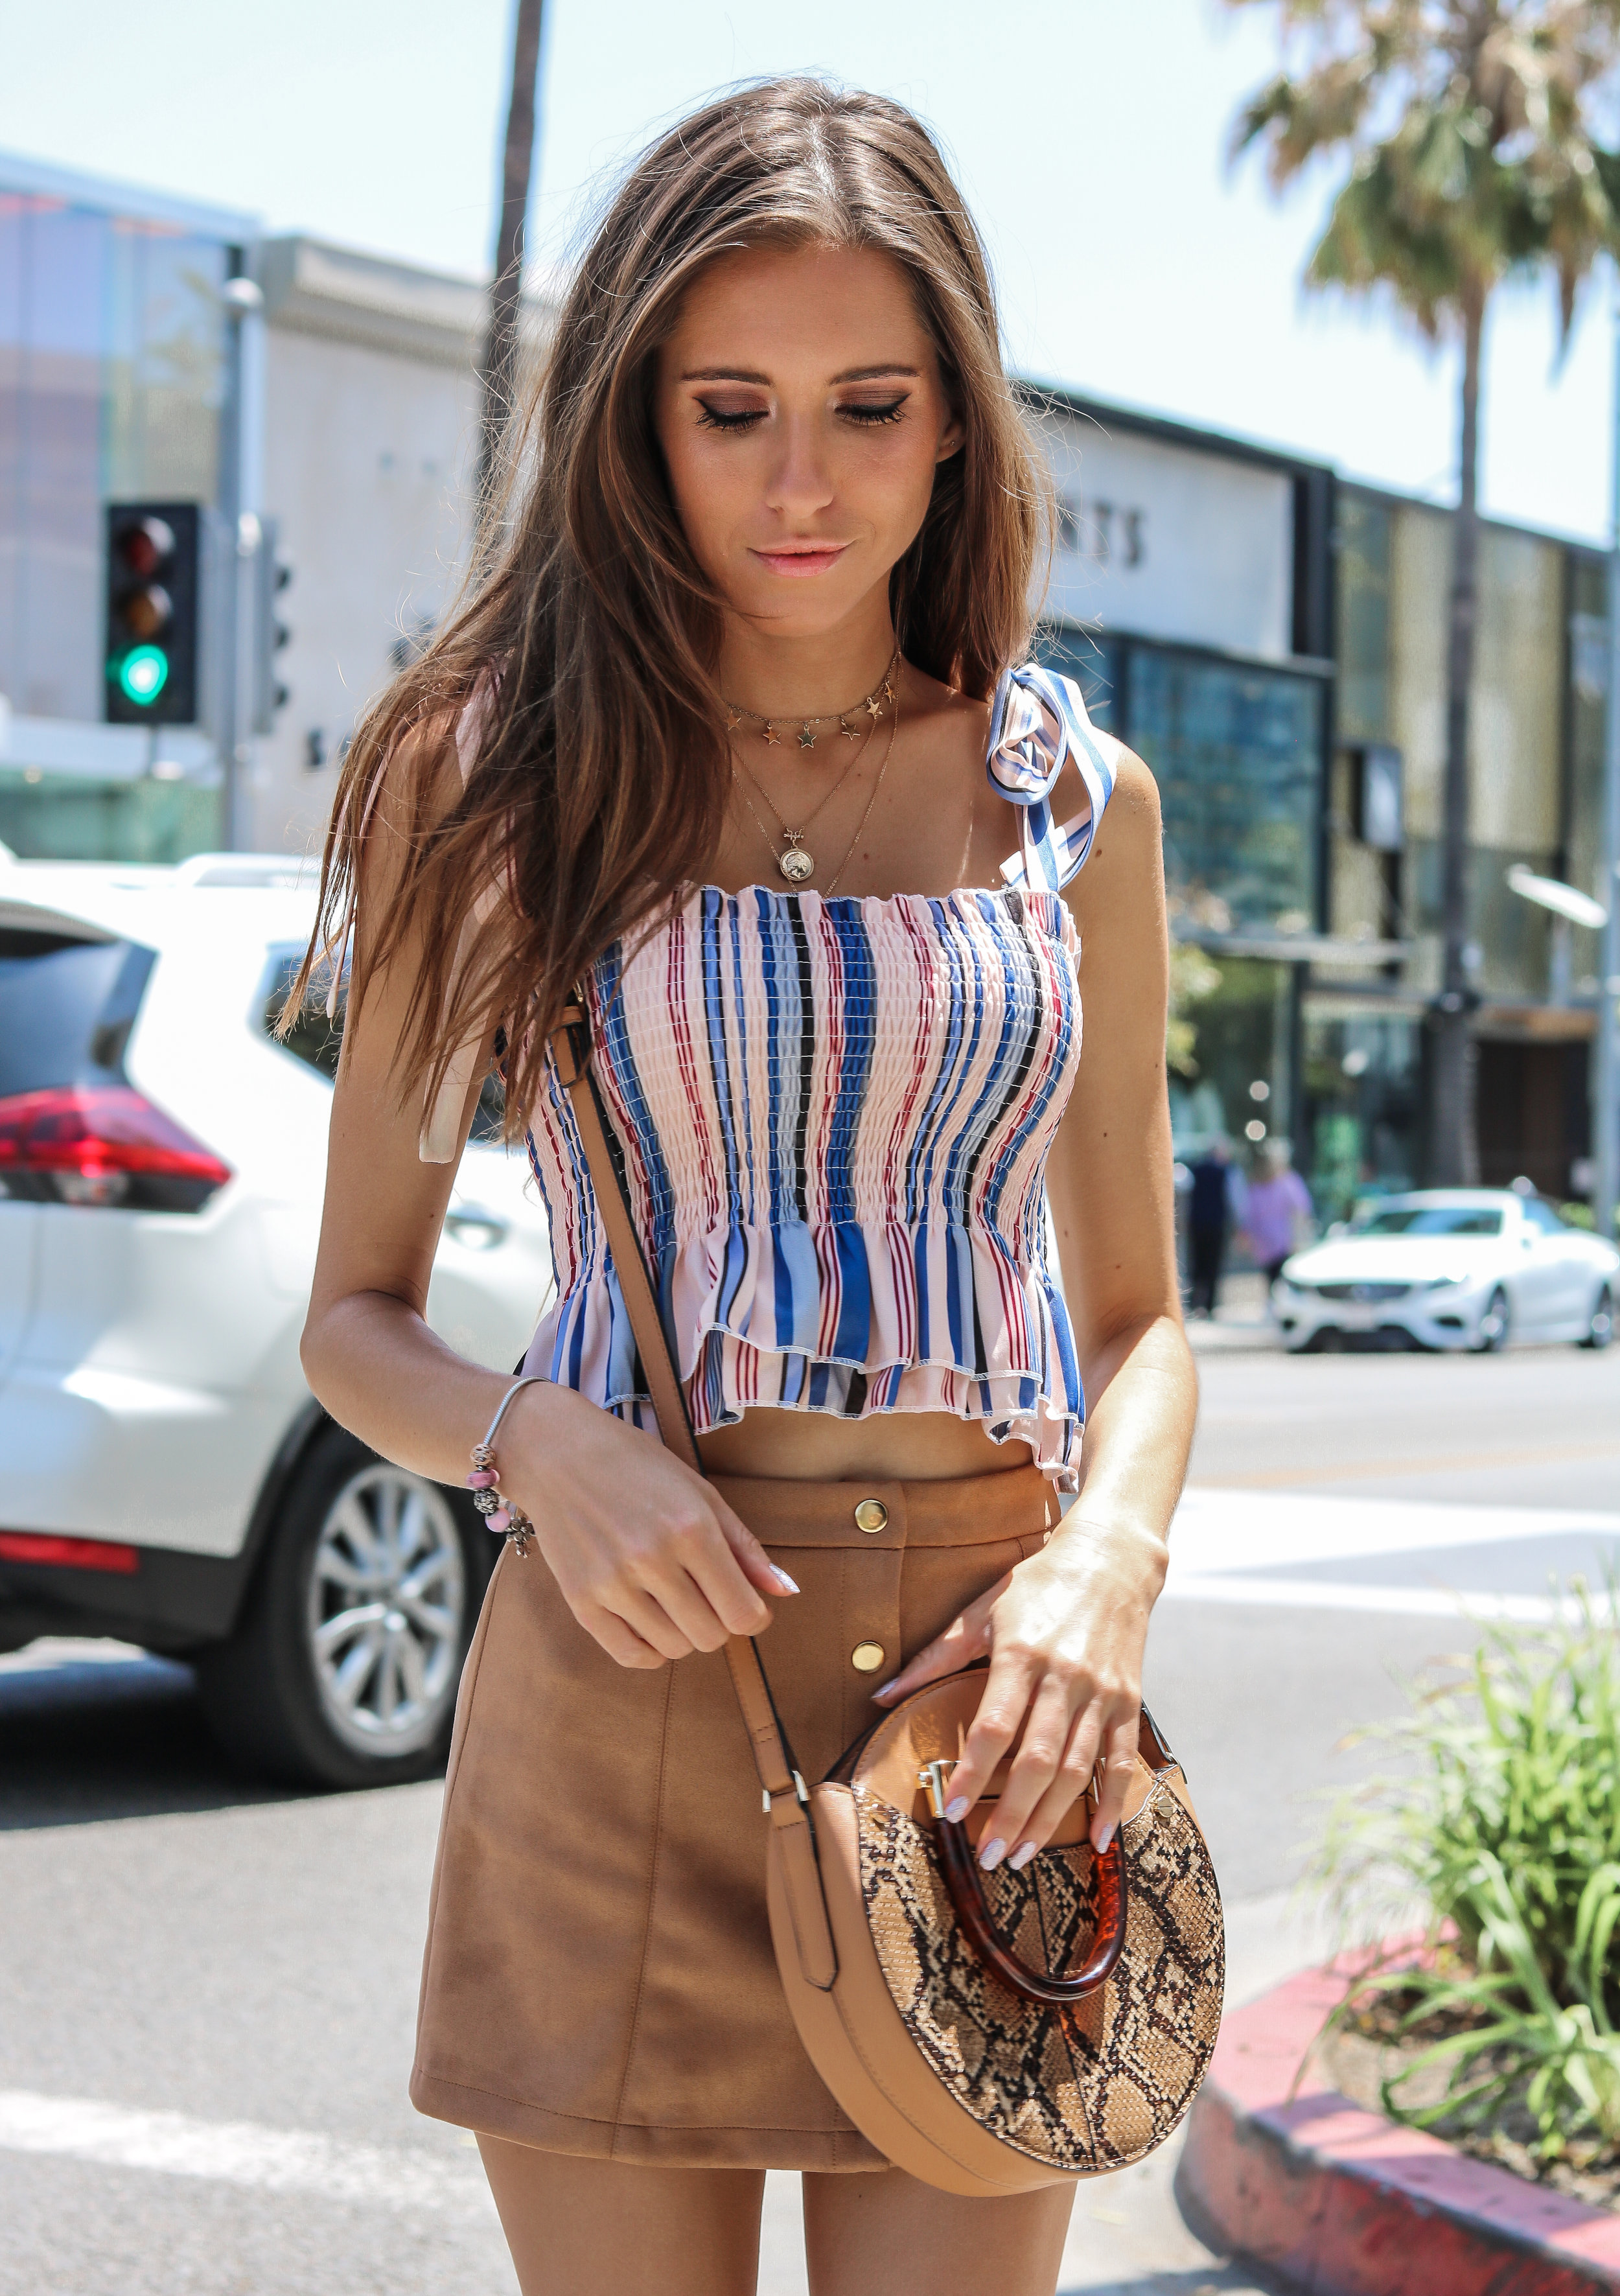 THE HUNGARIAN BRUNETTE - MY TIPS TO SHOP FOR CLOTHES ON AMAZON